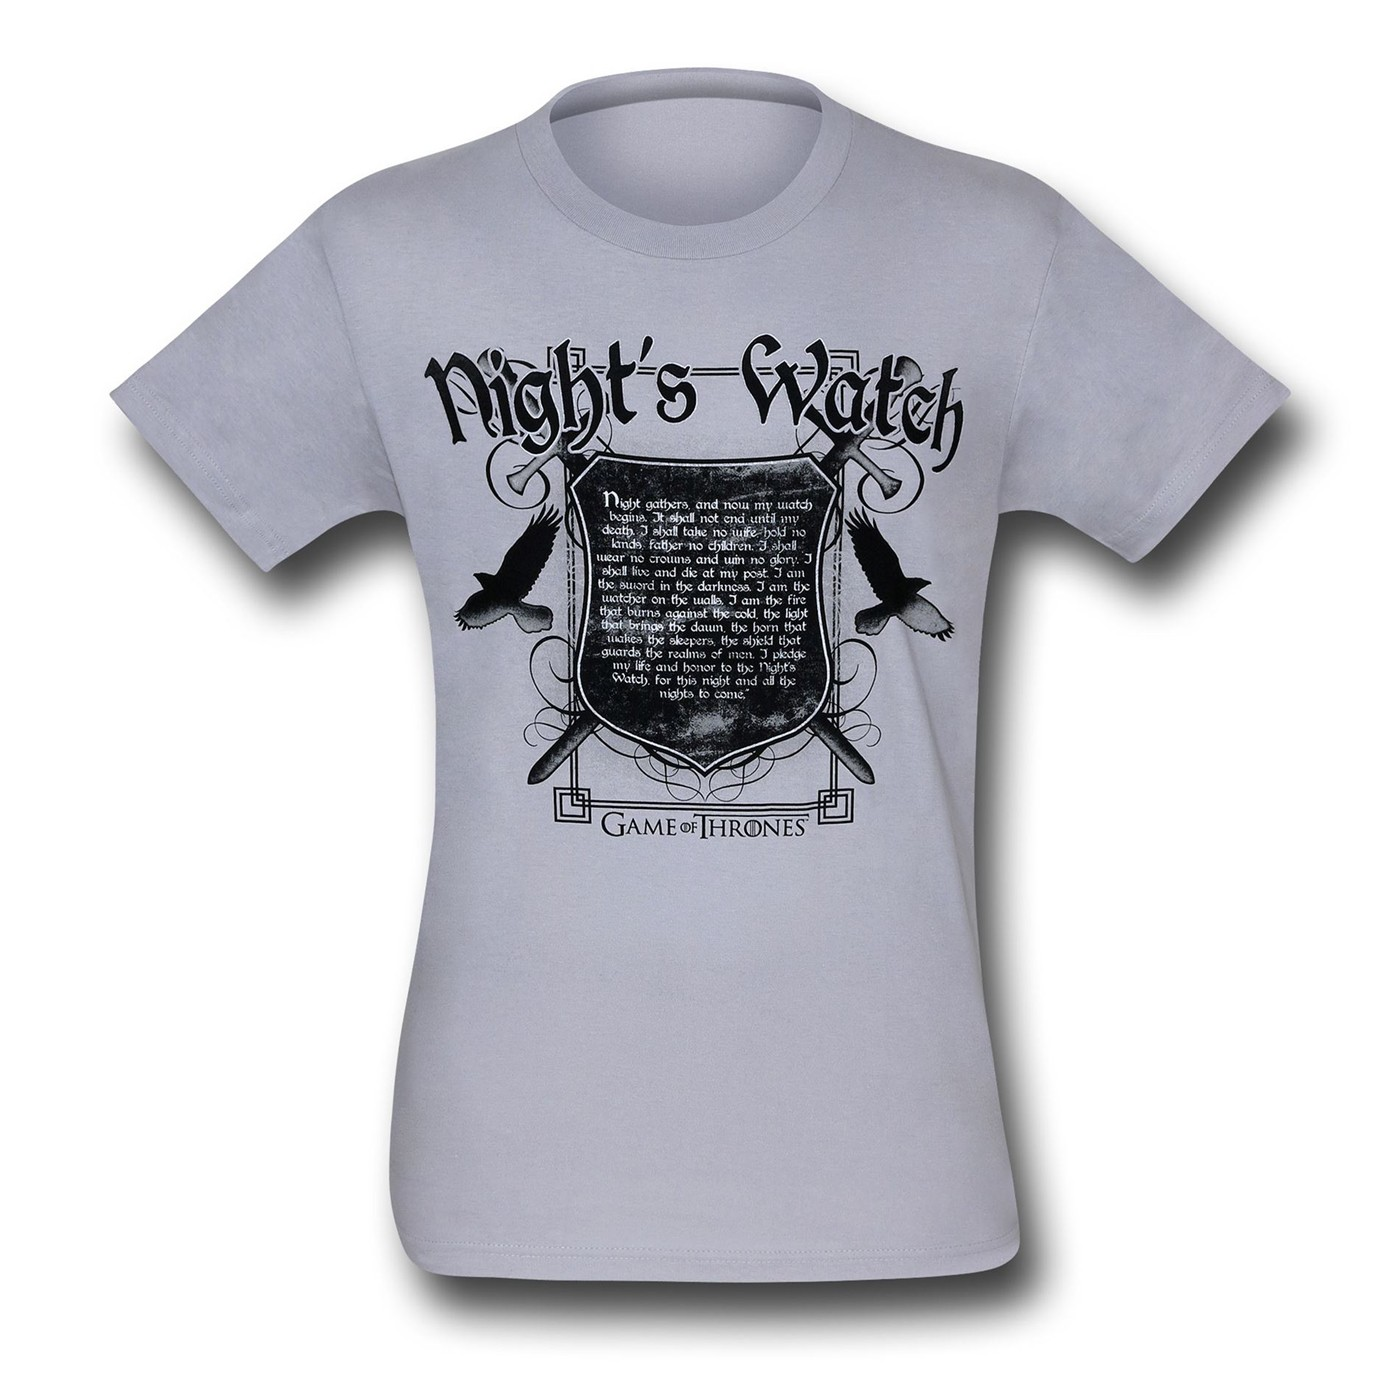 Game of Thrones Night's Watch T-Shirt